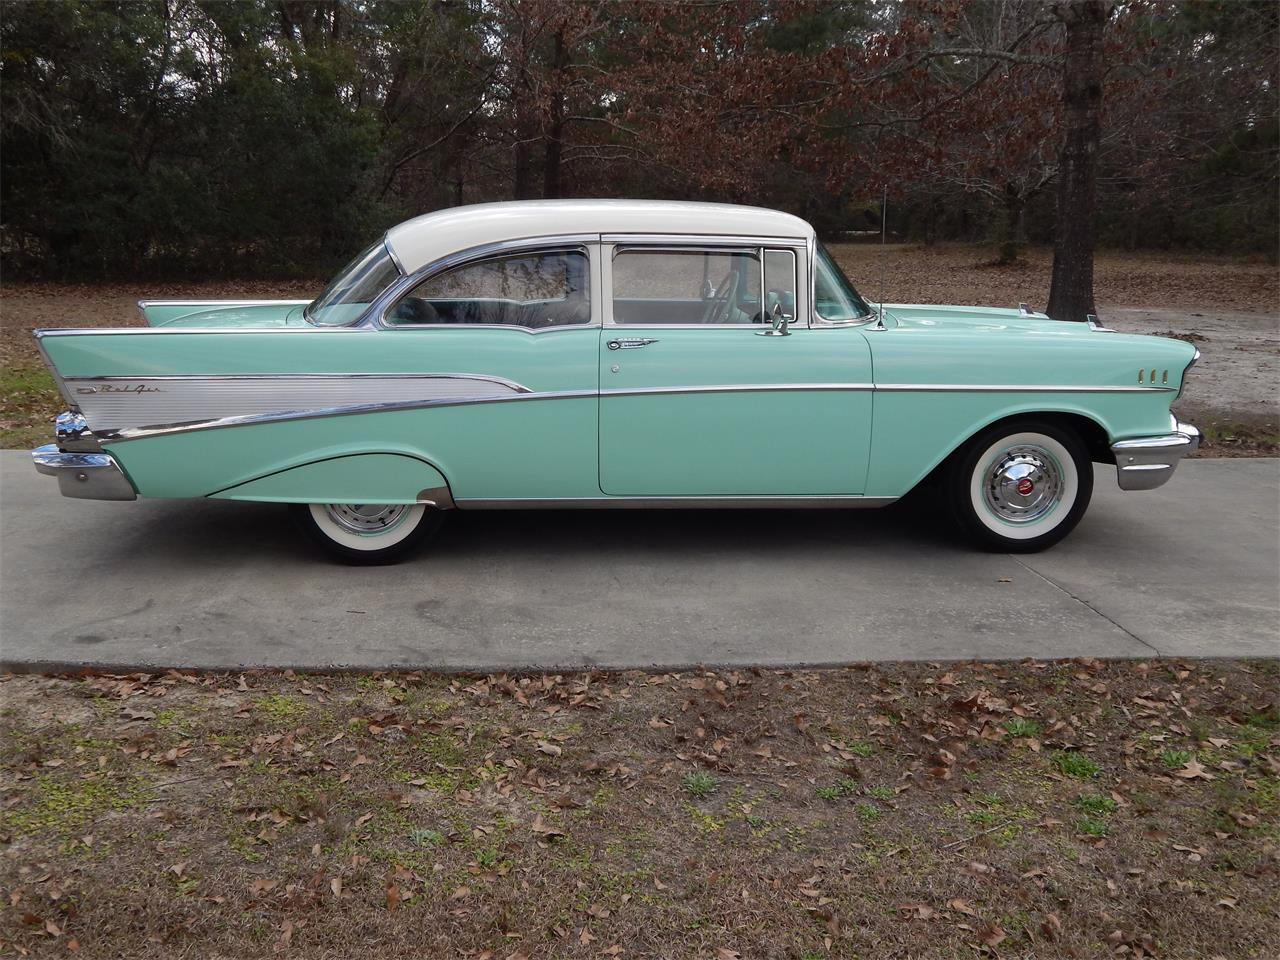 1957 Chevrolet Bel Air for sale in Online, Online Auction – photo 5